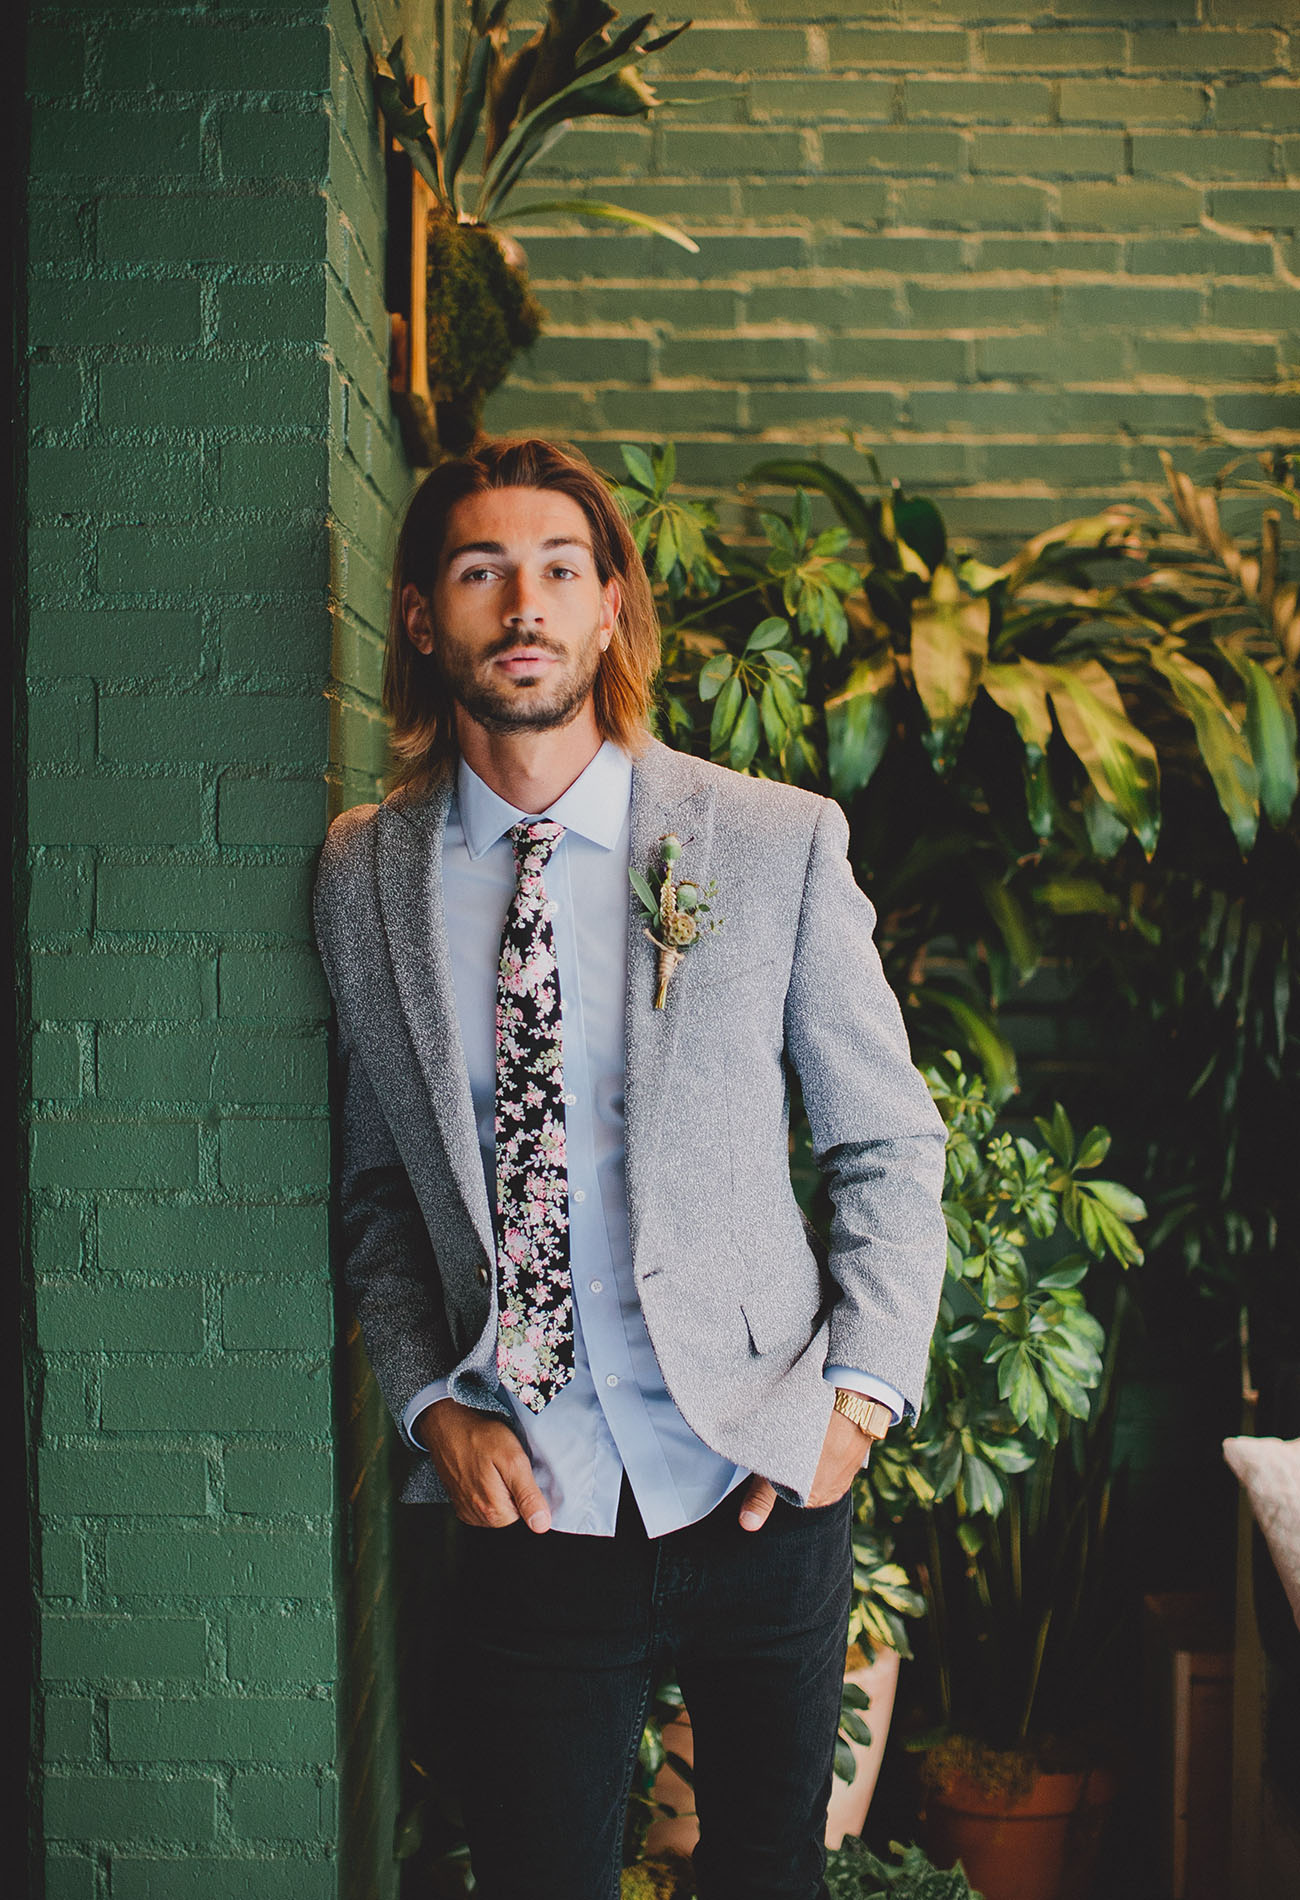 GWS x Neck & Tie Company Collection is here! The Creative's Loft Grooms